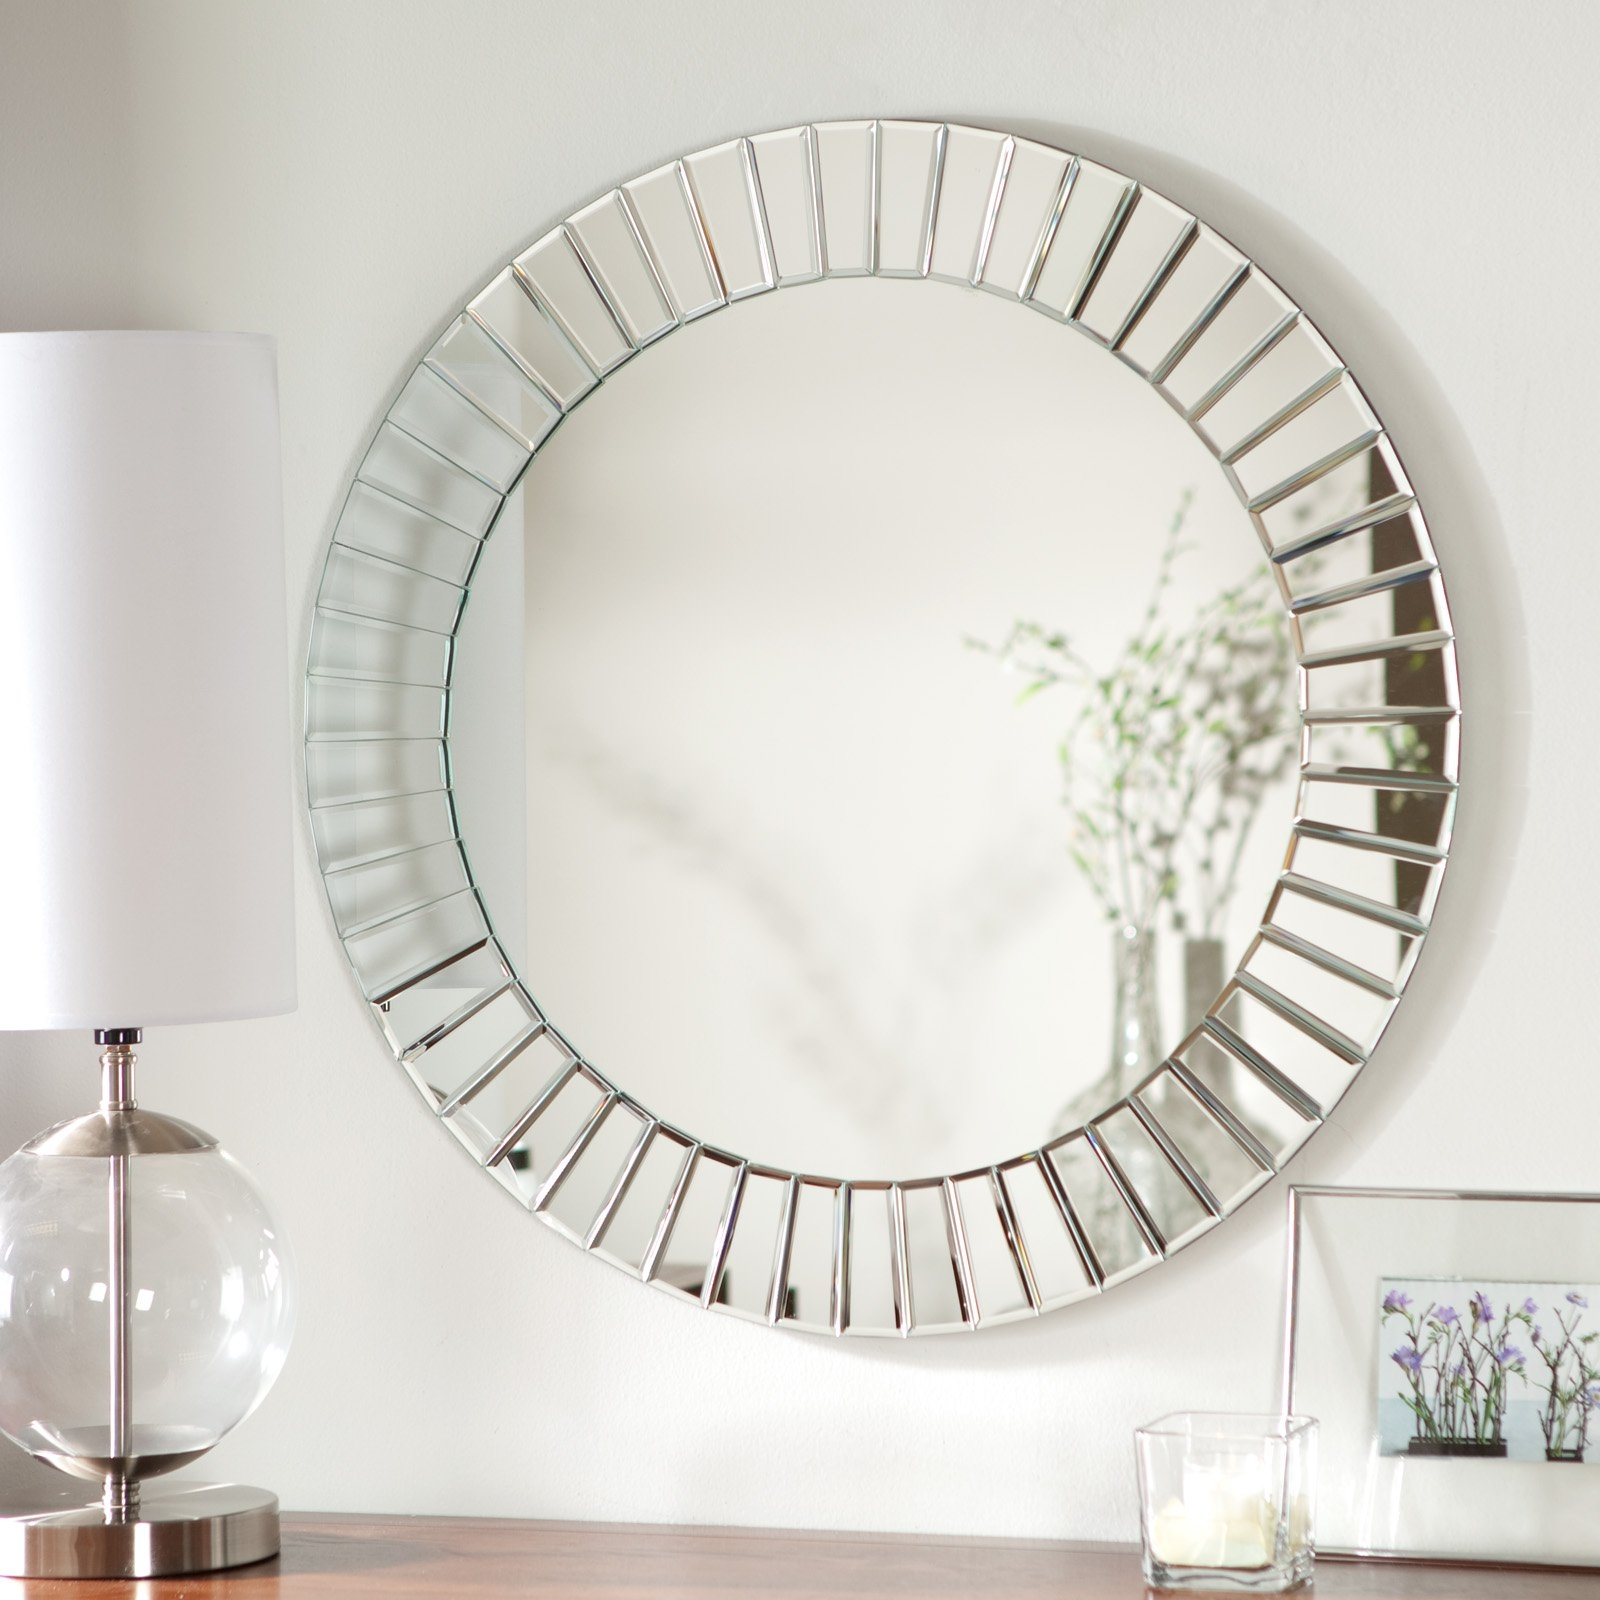 Fancy Full Length Mirror Latest Full Length U Floor Mirrors Buy In Long Mirrors For Sale (Image 7 of 15)